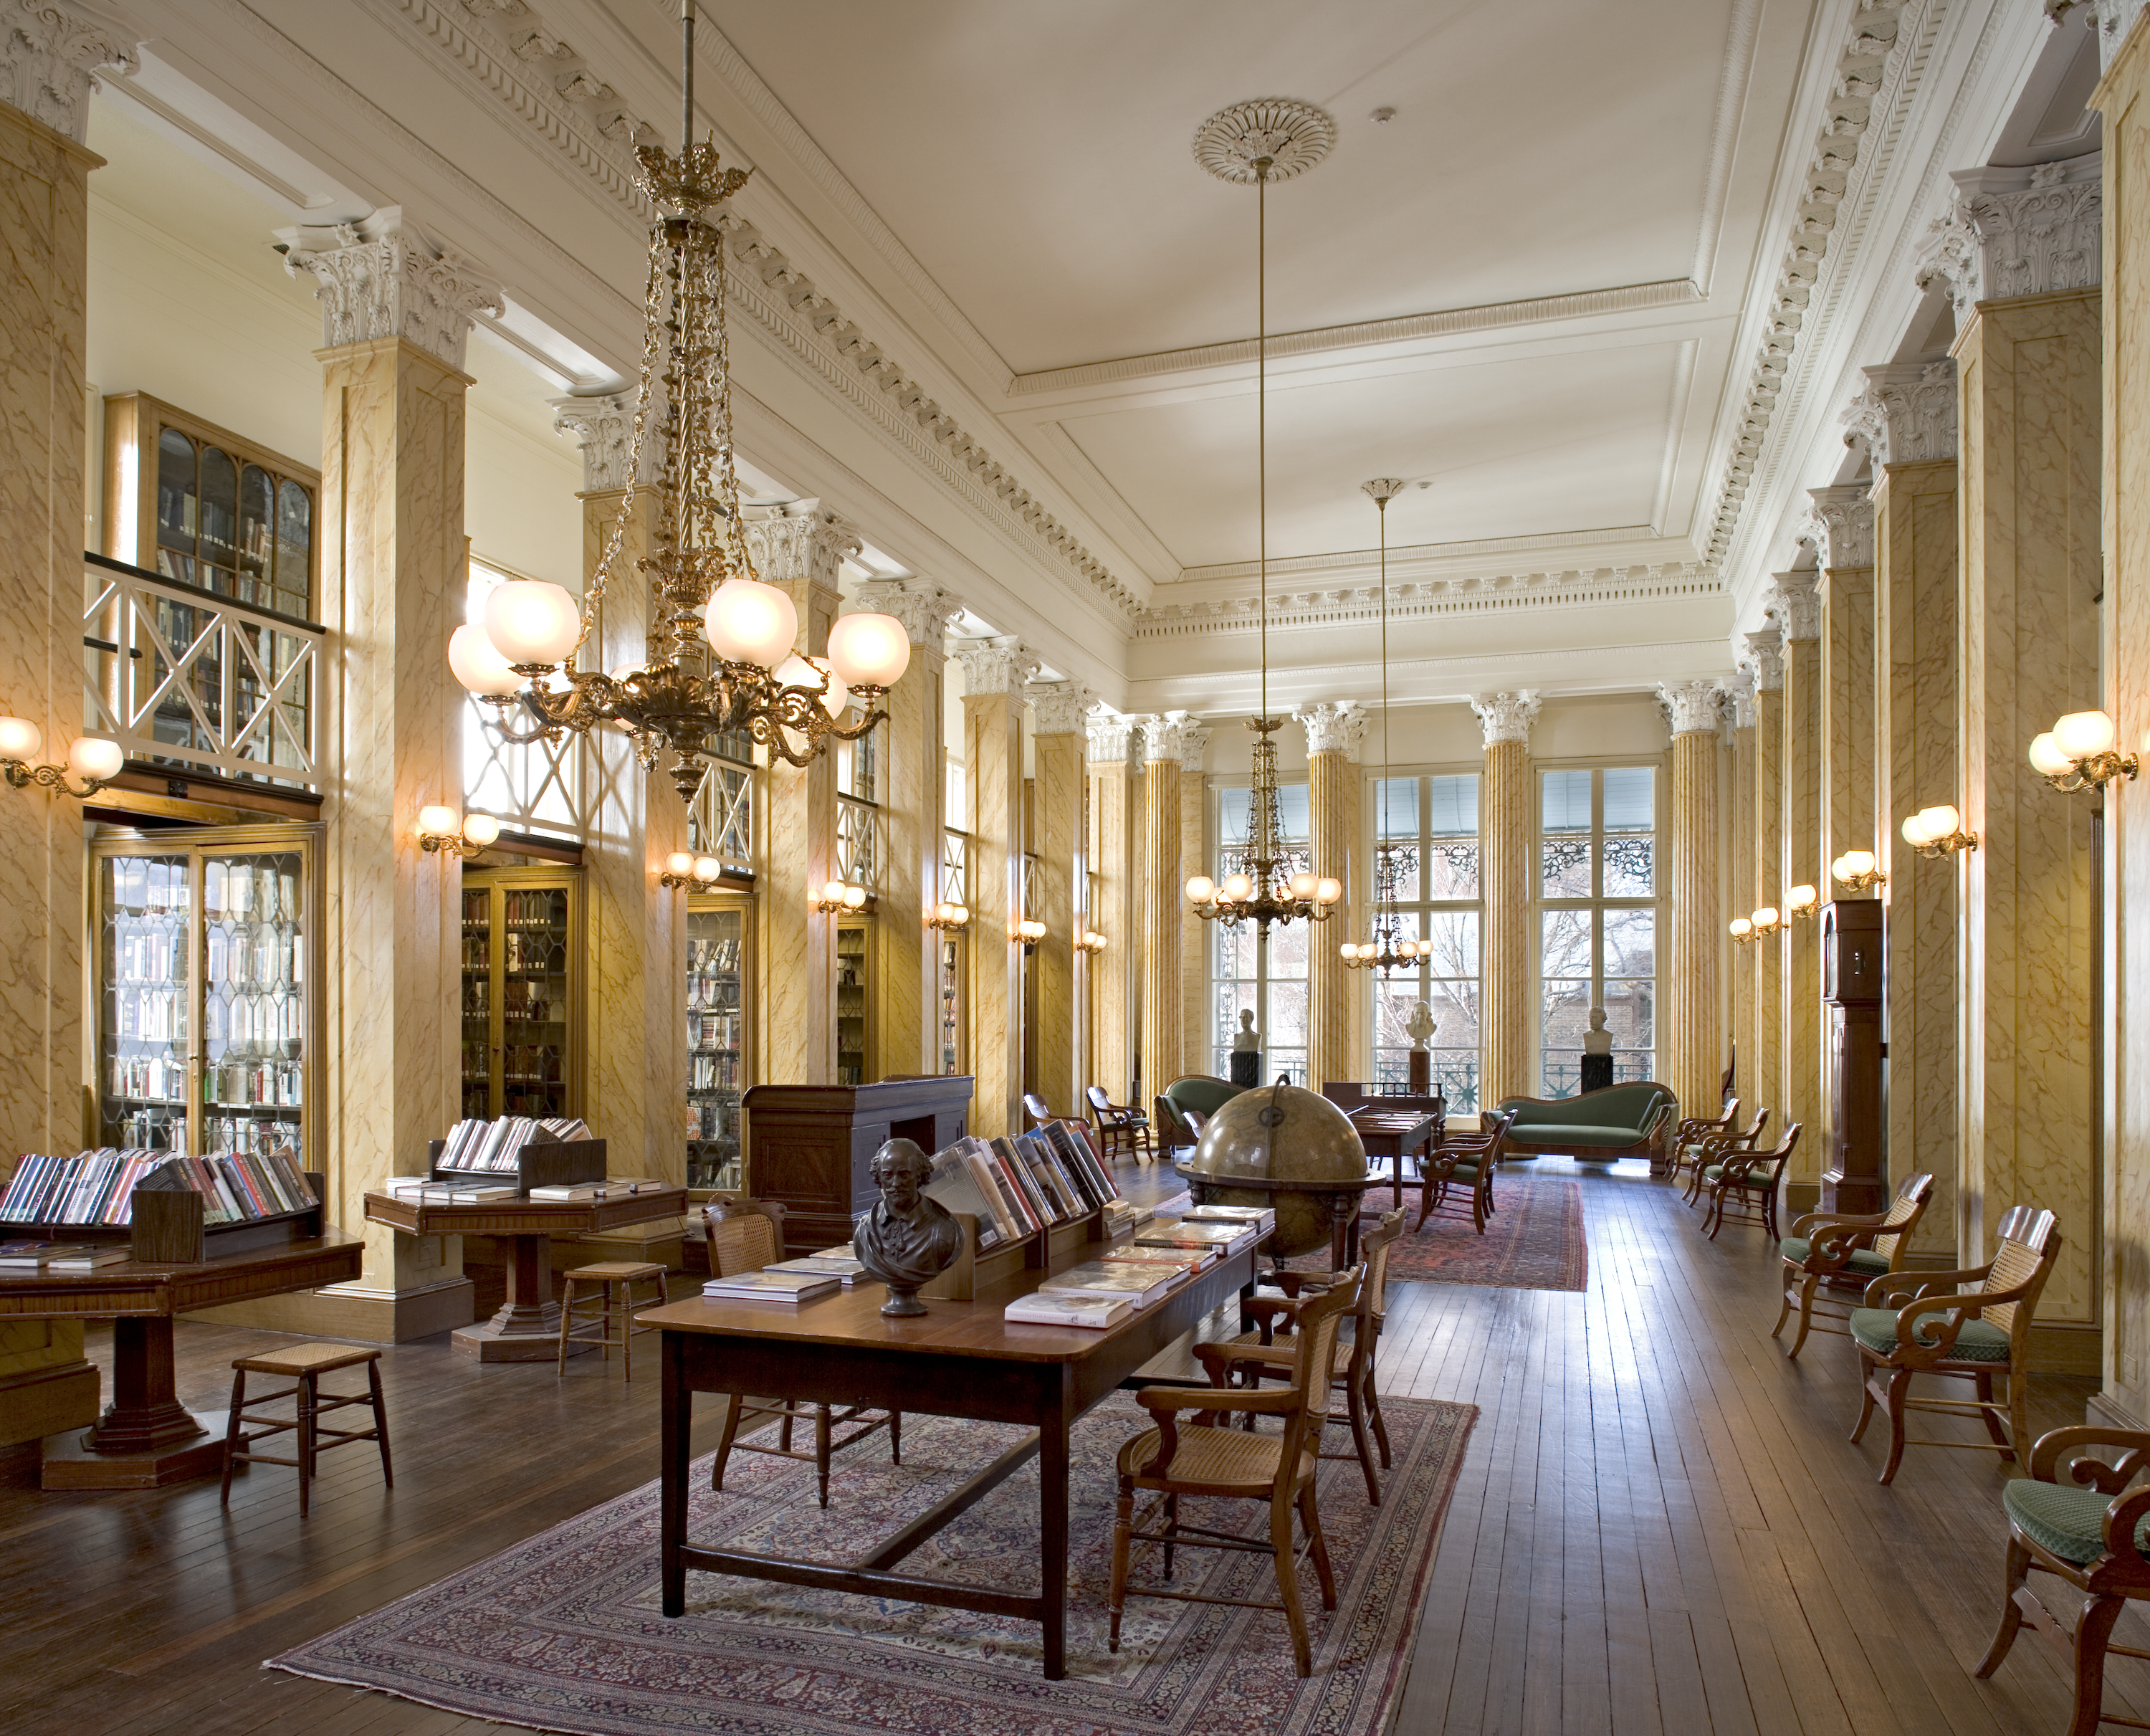 One of the two reading rooms in The Athenaeum of Philadelphia (photo credit: Tom Crane)